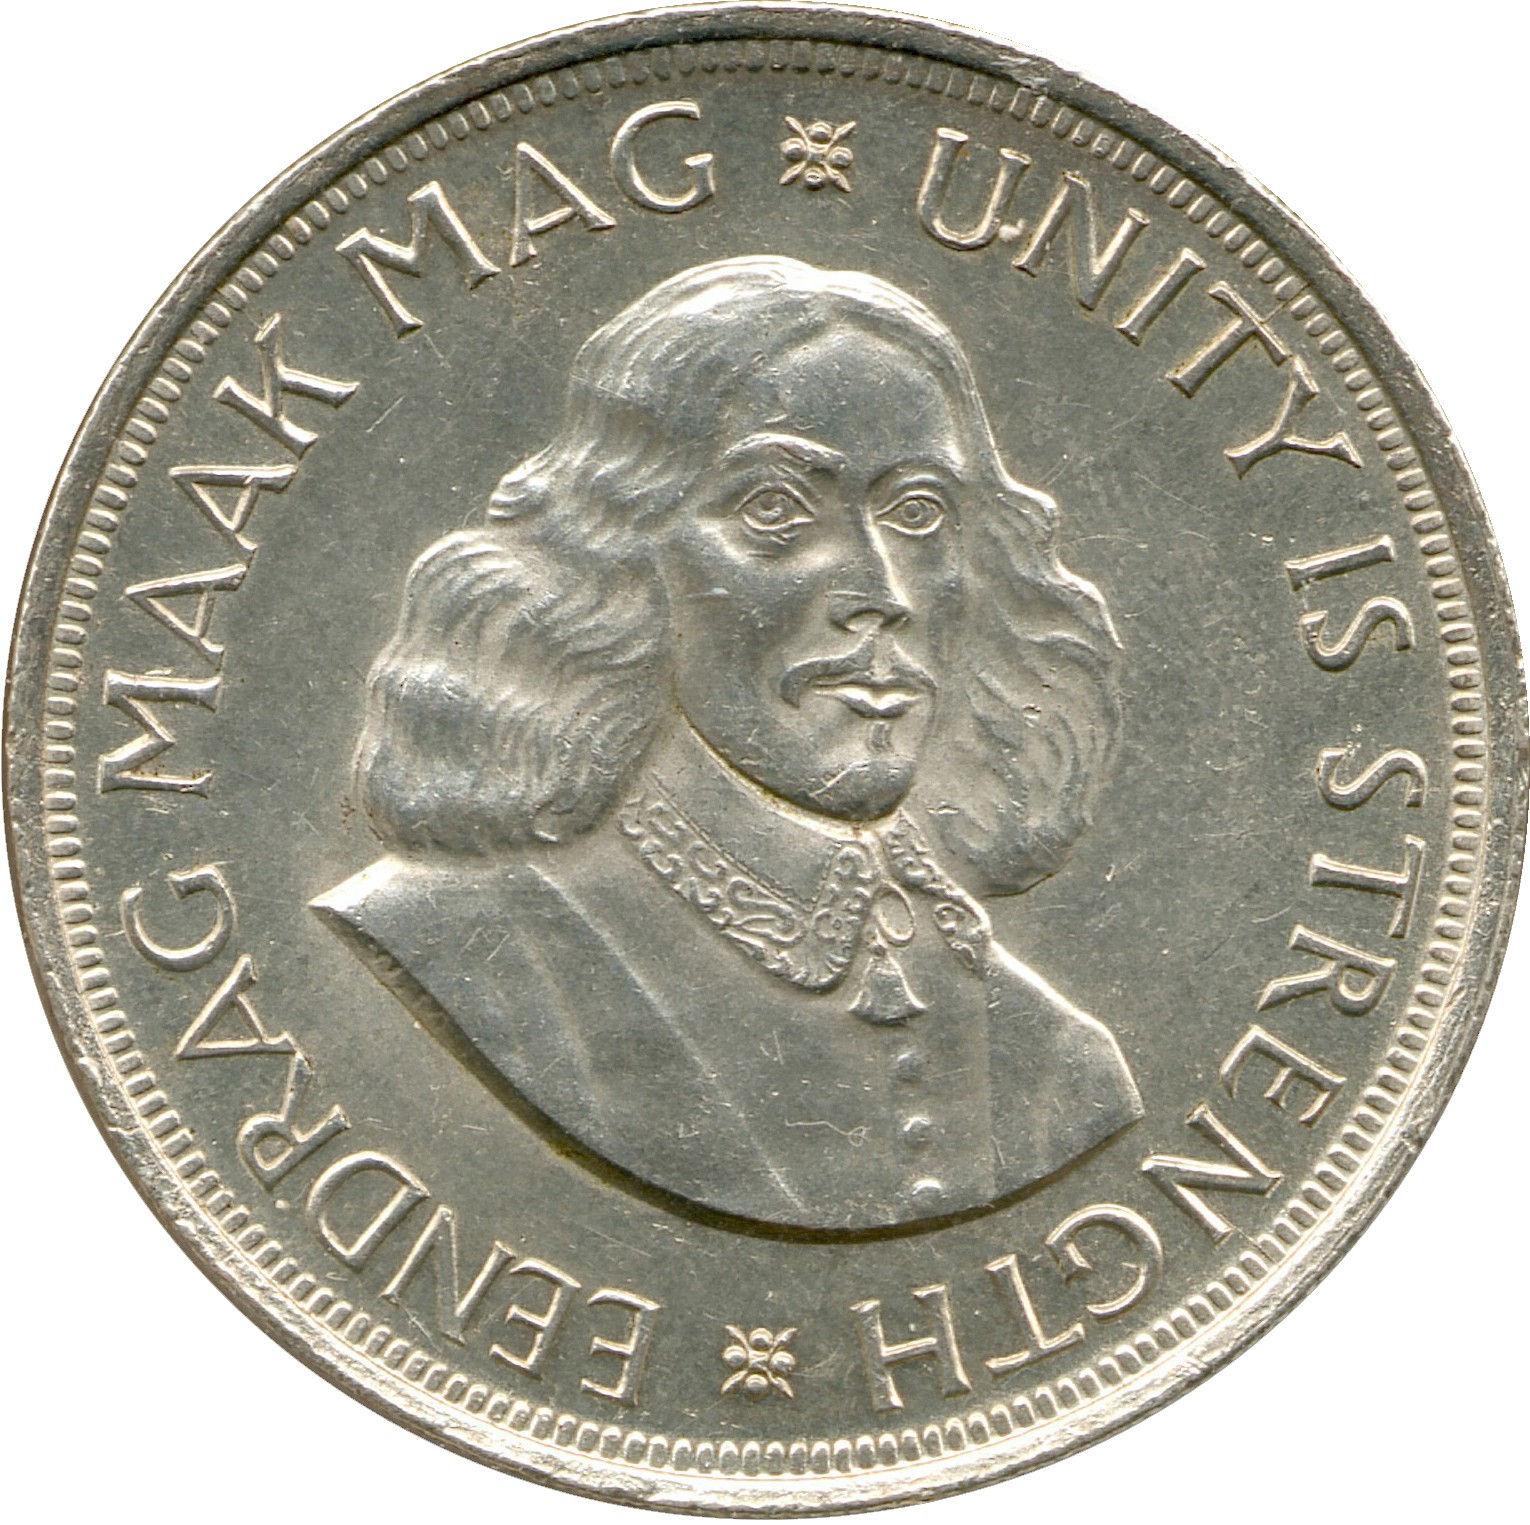 old 50c coin